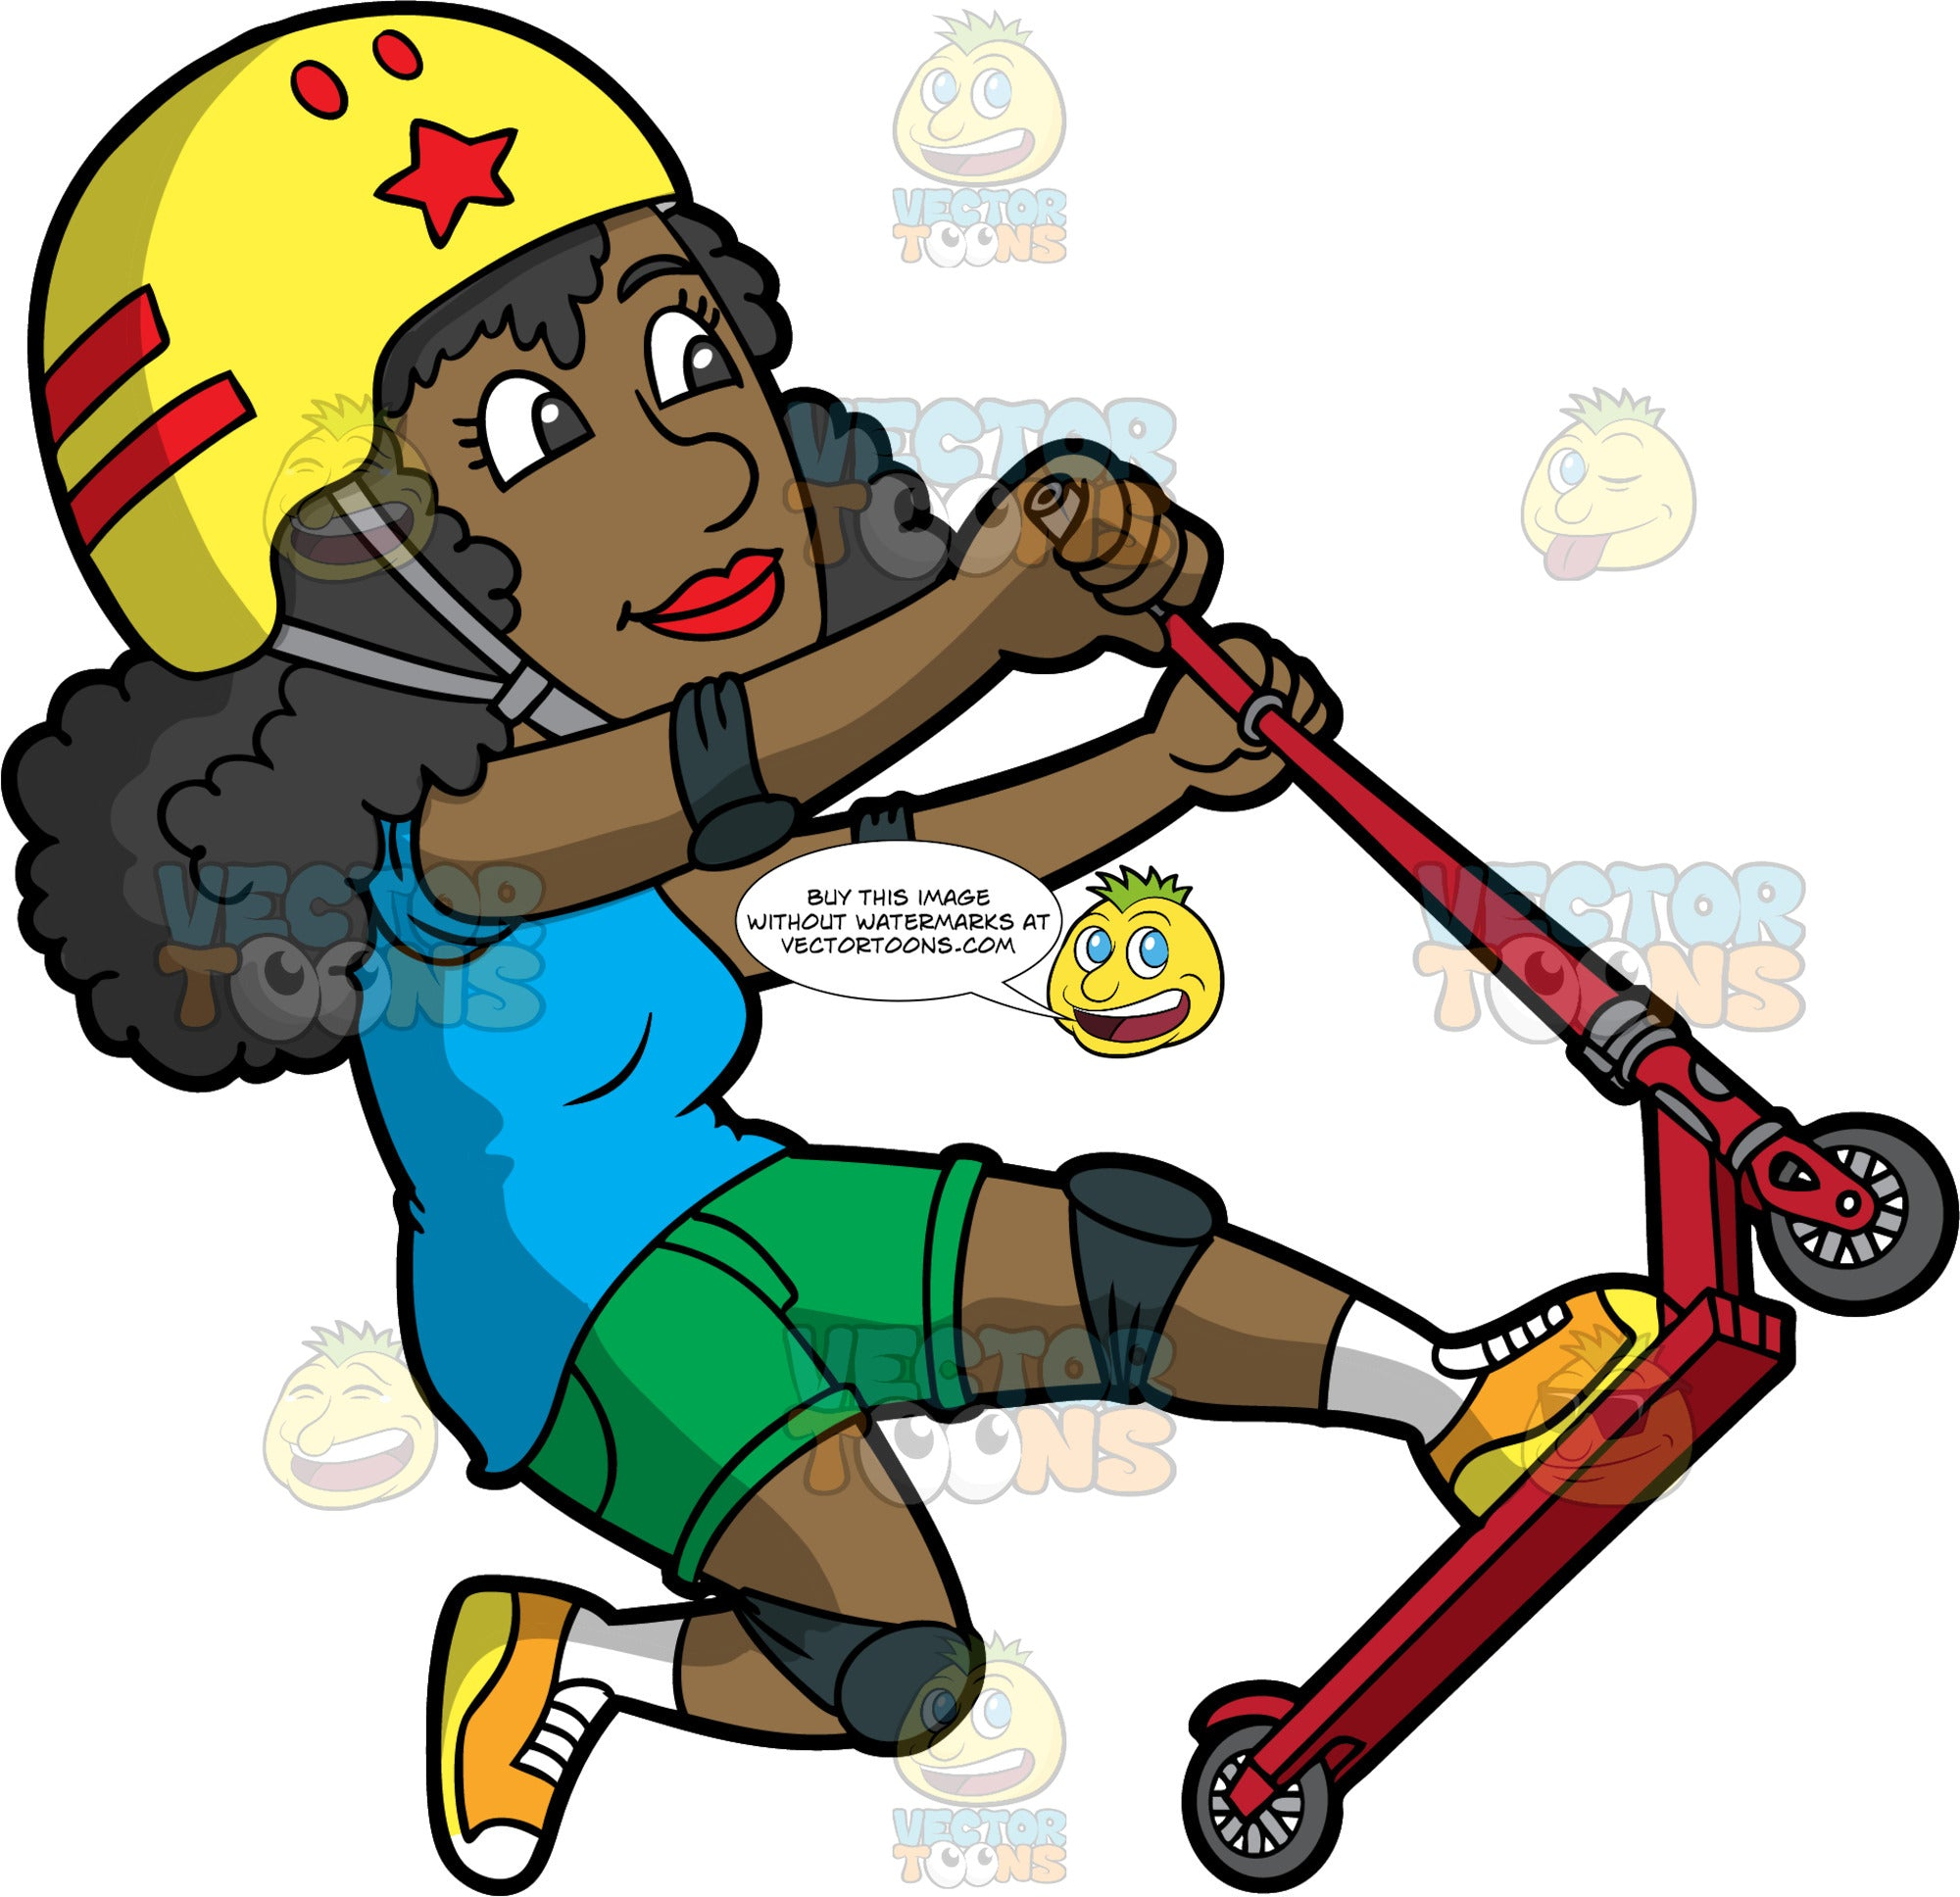 A Black Woman Riding Doing Tricks On A Scooter. A black woman with curly hair, wearing a yellow helmet with red accent, gray chin strap, blue shirt, green shorts, dark grayish blue knee pads, white socks, yellow with orange and white sneakers, smiles while pulling up her red and gray scooter with wheels as she is riding it